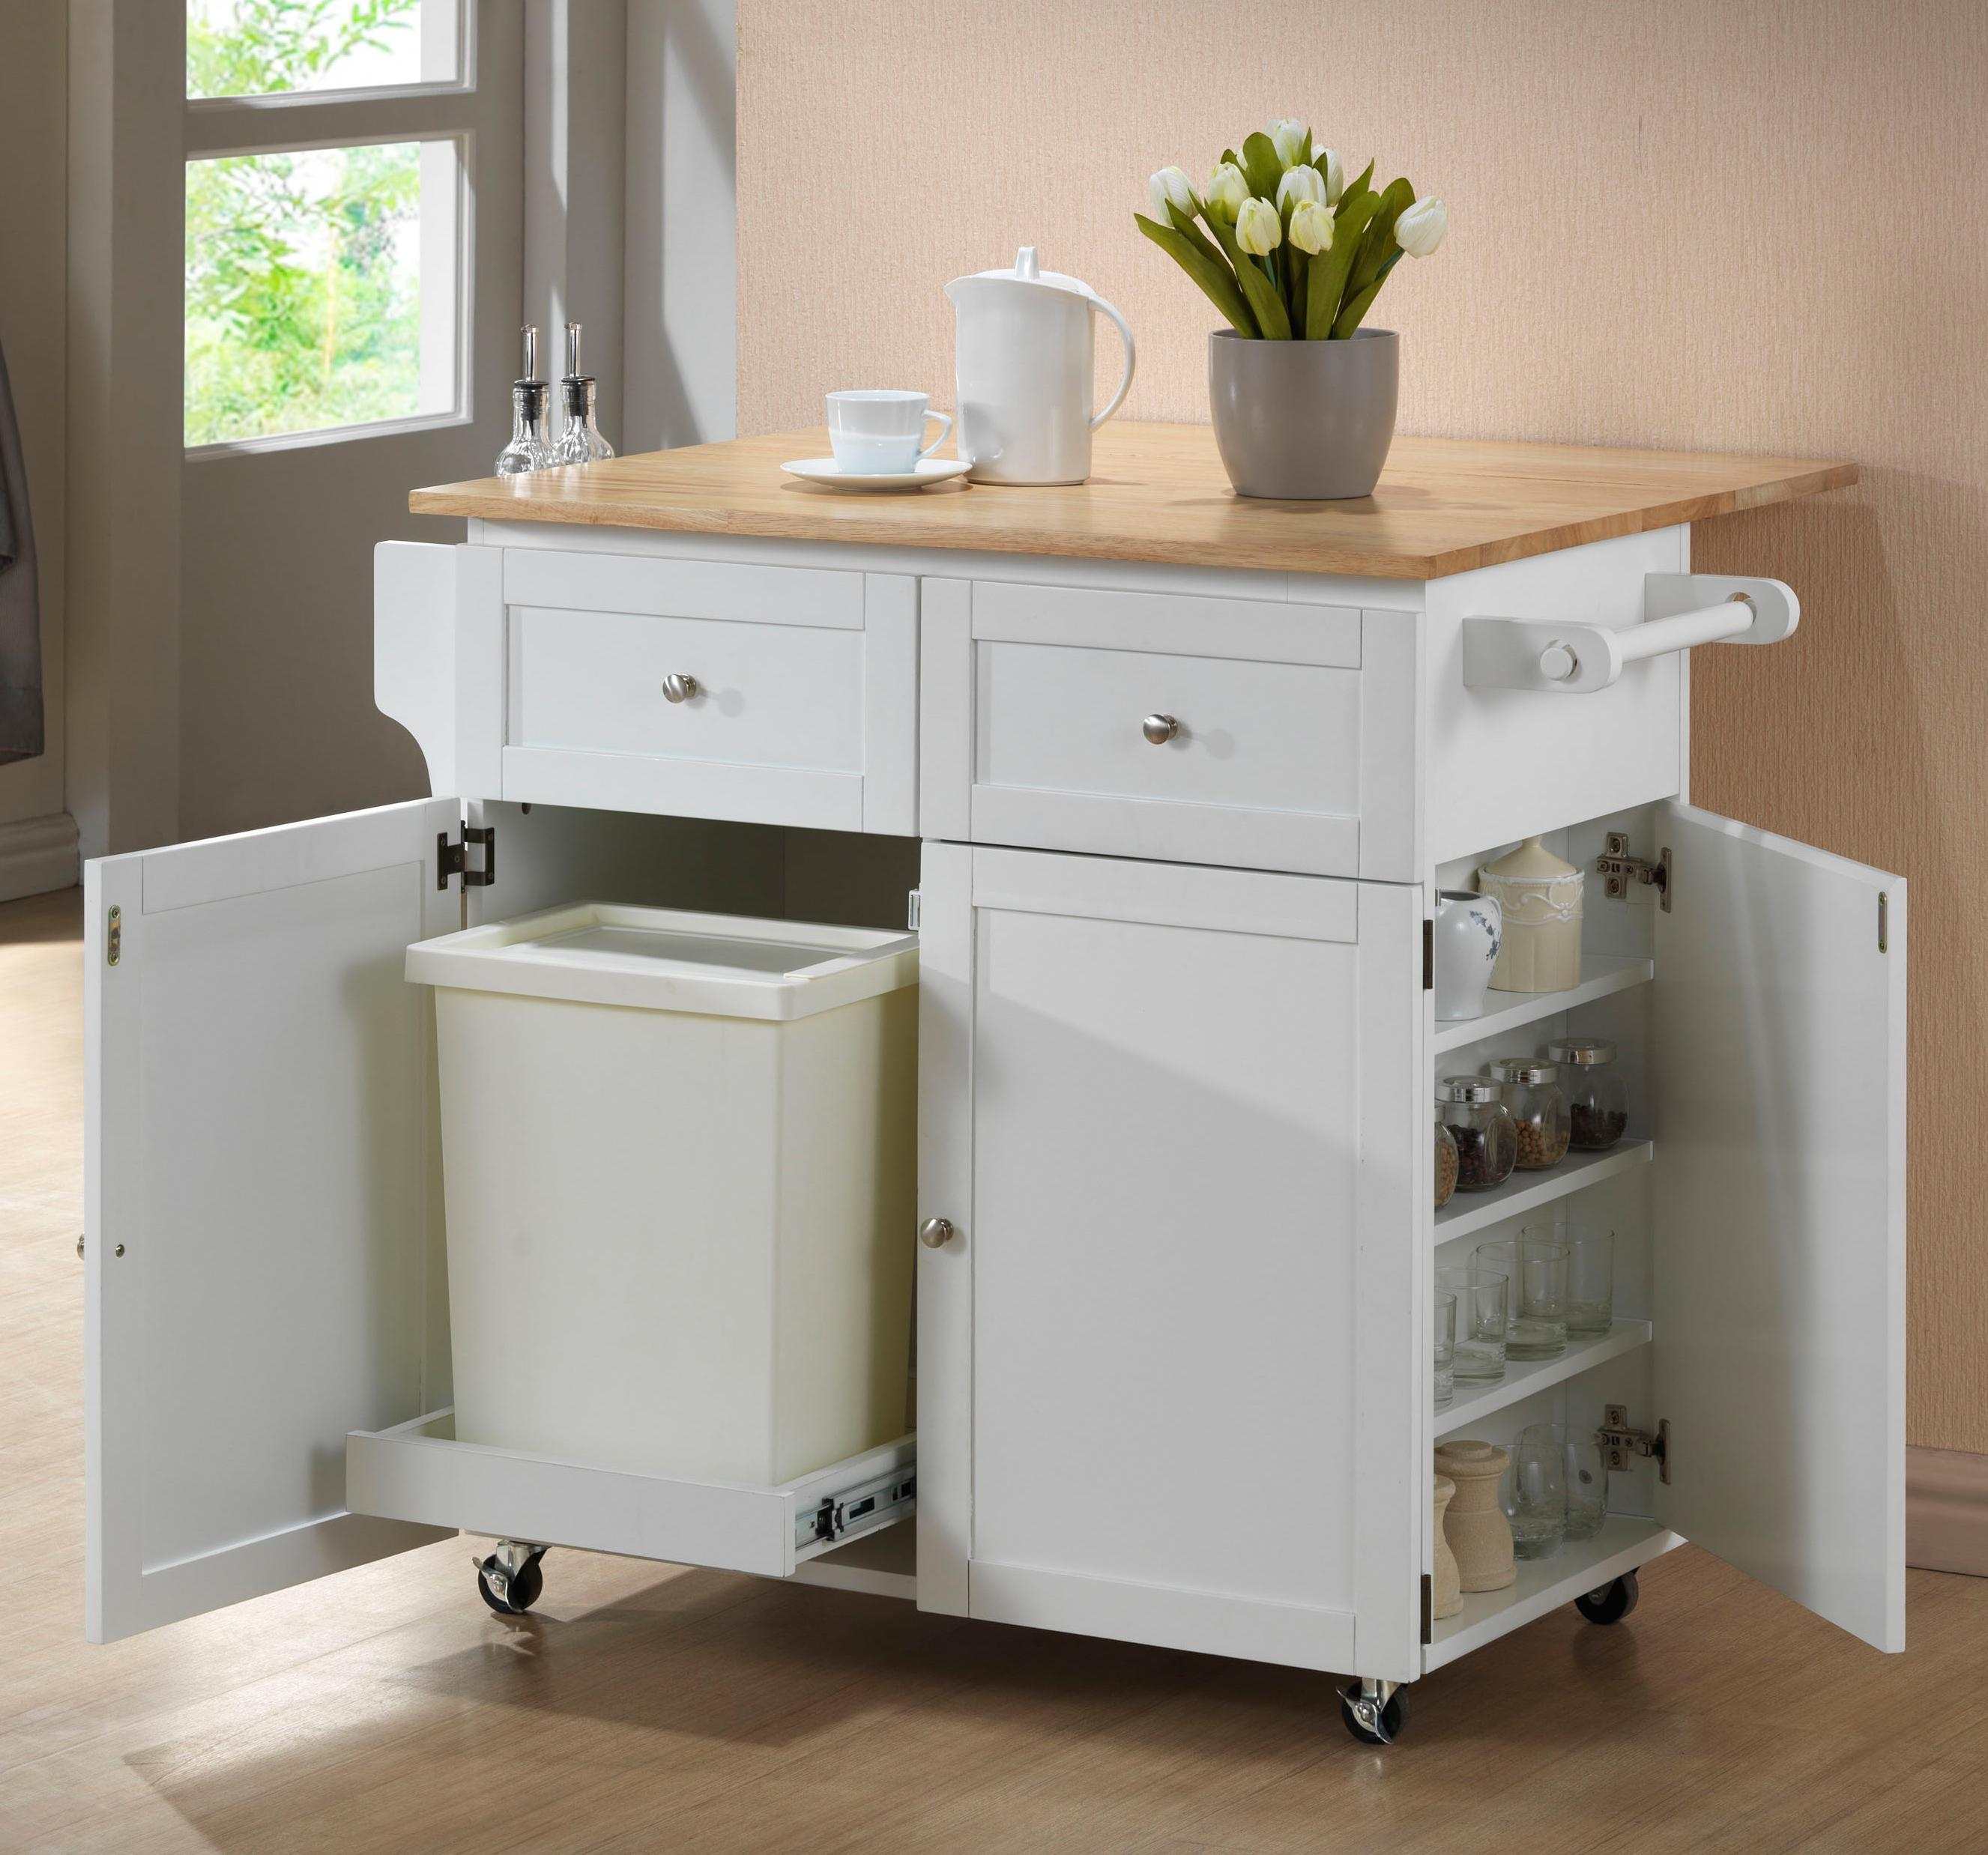 Kitchen Carts Kitchen Cart by Coaster at Value City Furniture